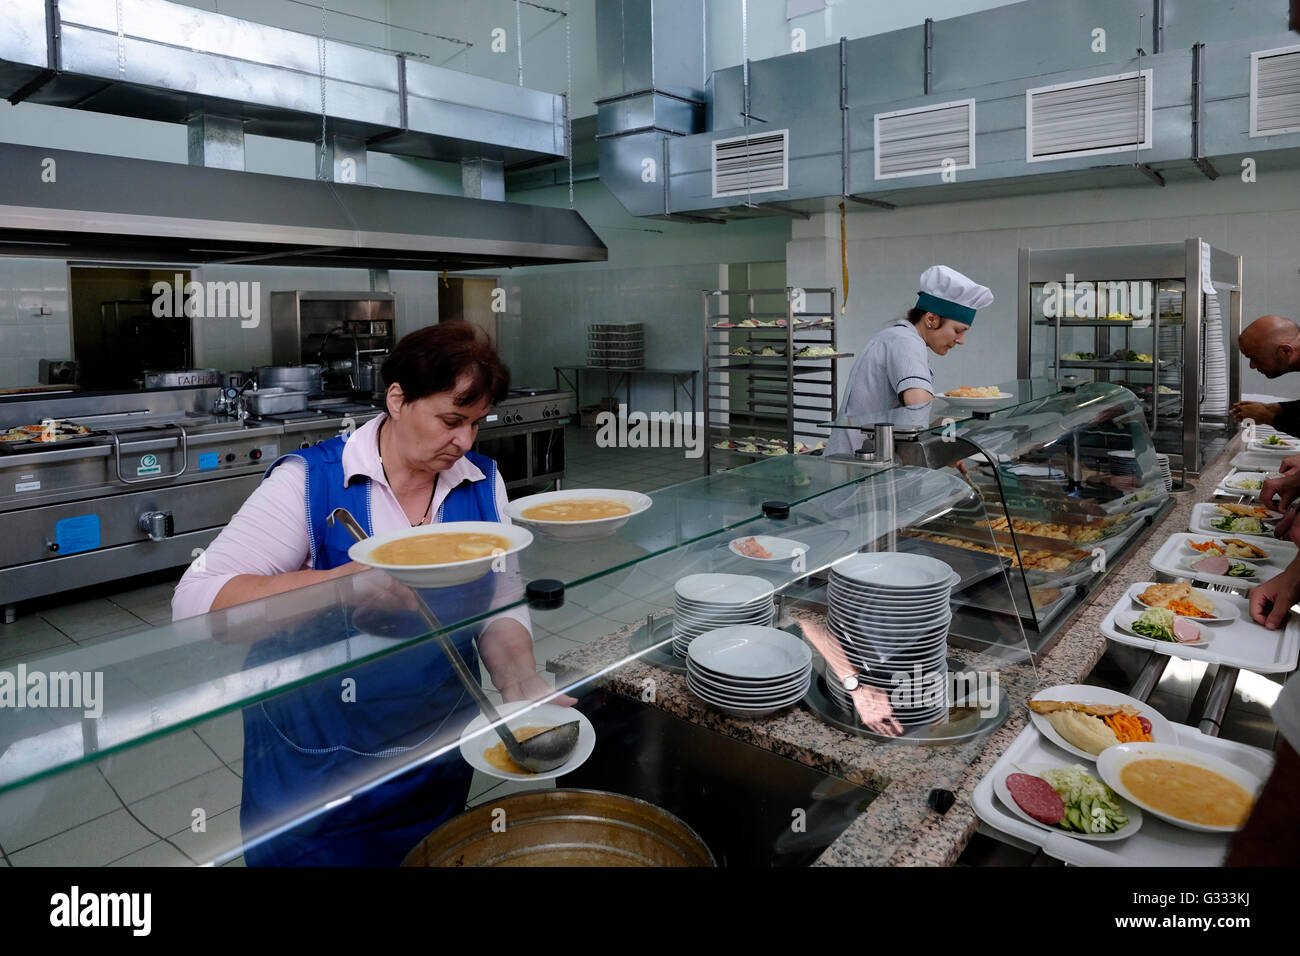 Ukrainian kitchen workers serving food at the canteen of Chernobyl nuclear site in Ukraine on 04 June 2016. The - Stock Image